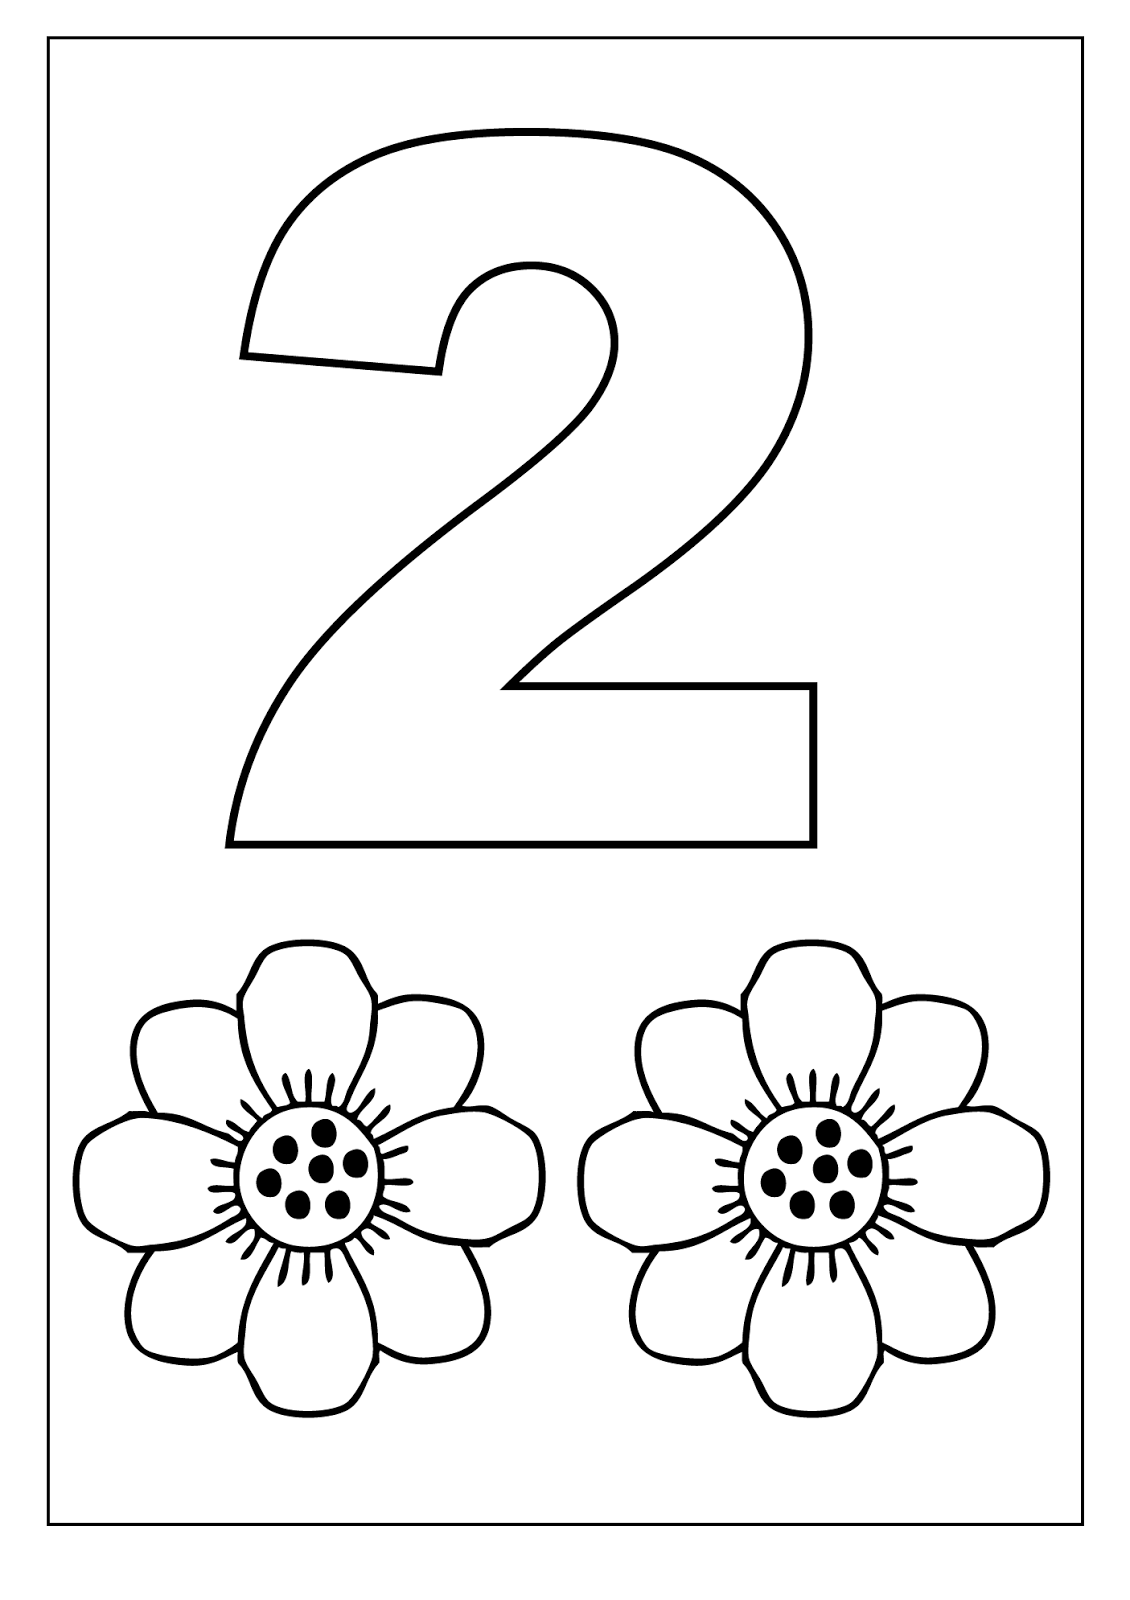 Number 2 Worksheets Free Worksheets Library